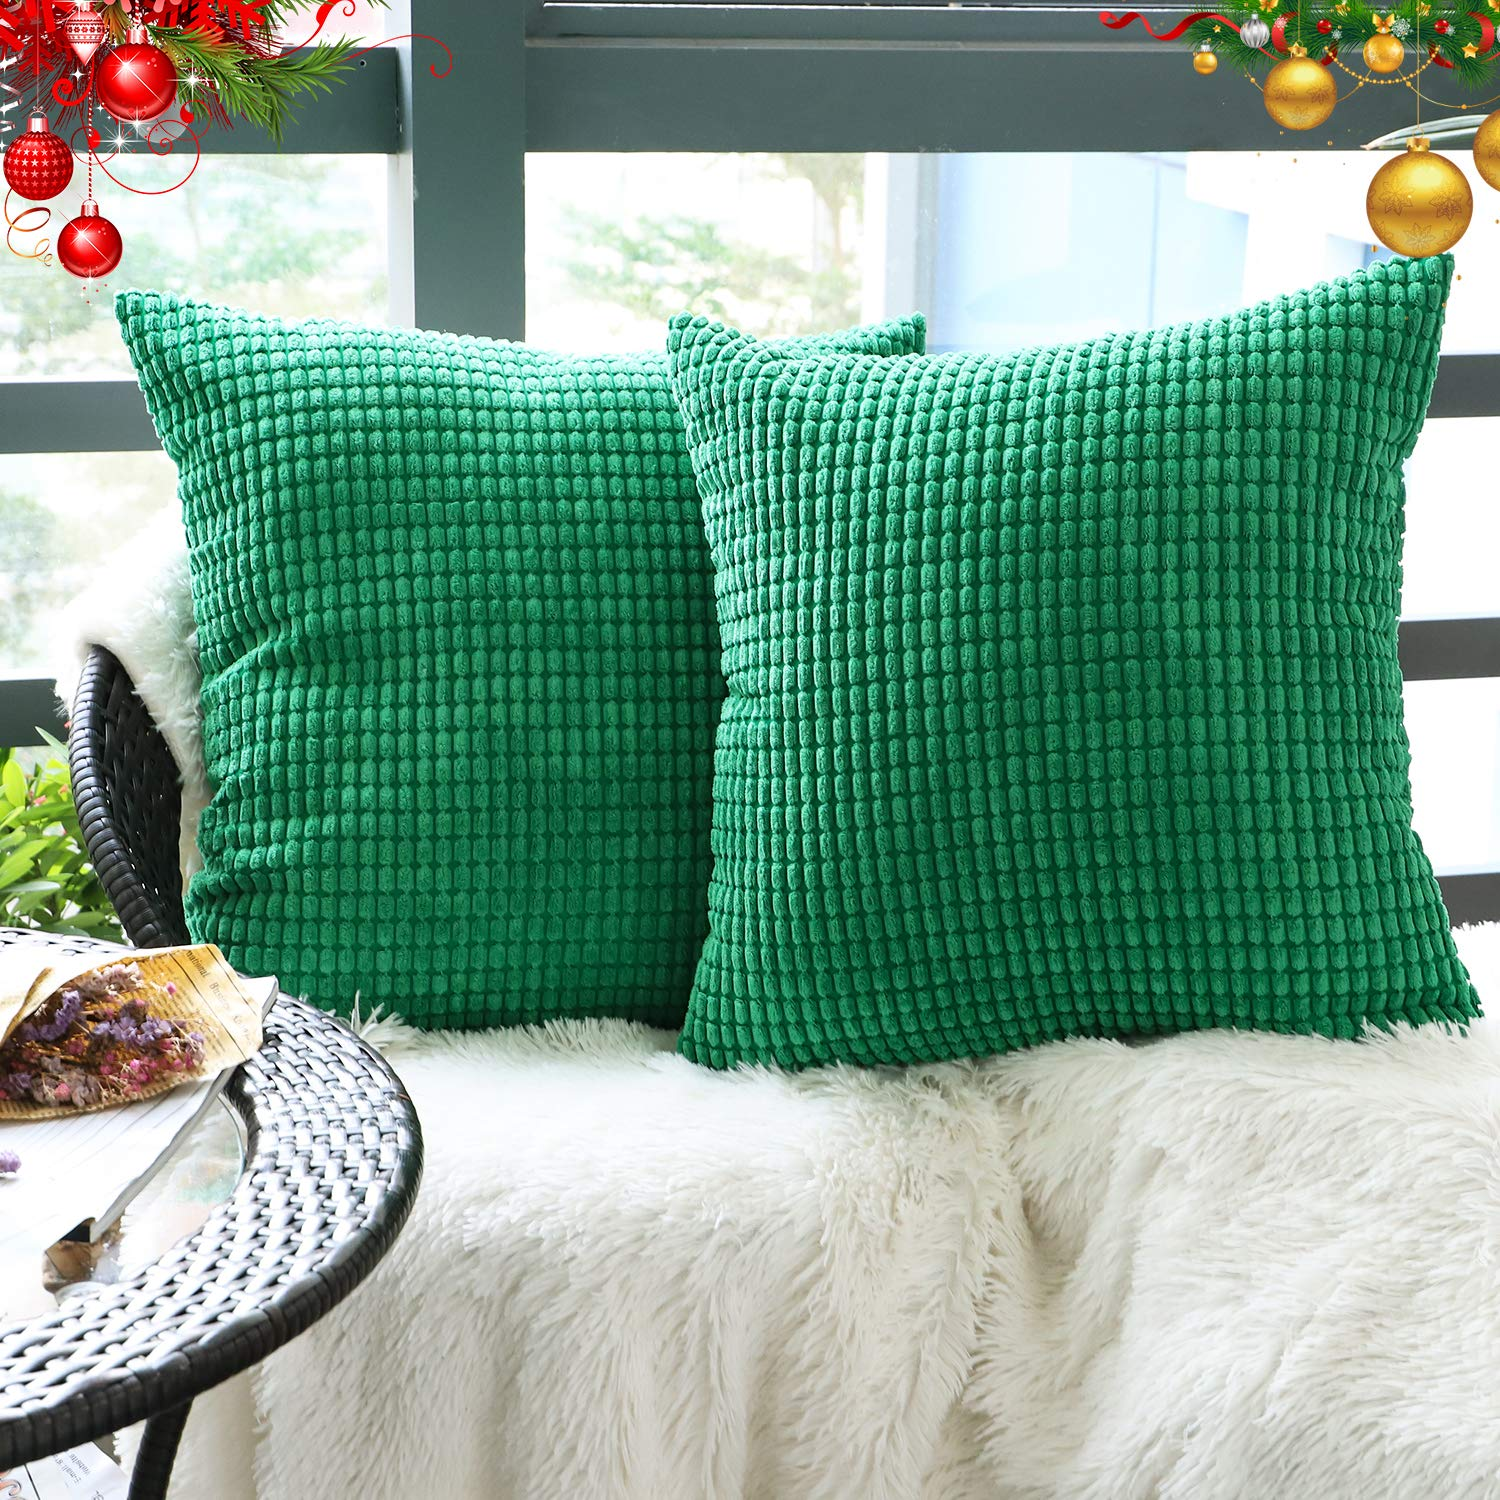 """Set of 2,Decorative Throw Pillow Covers 20"""" x 20"""" (No Insert),Solid Cozy Corduroy Corn Accent Square Pillow Case Sham,Soft Large Cushion Cover w/Hidden Zipper for Couch/Sofa/Bedroom,Emerald Green"""